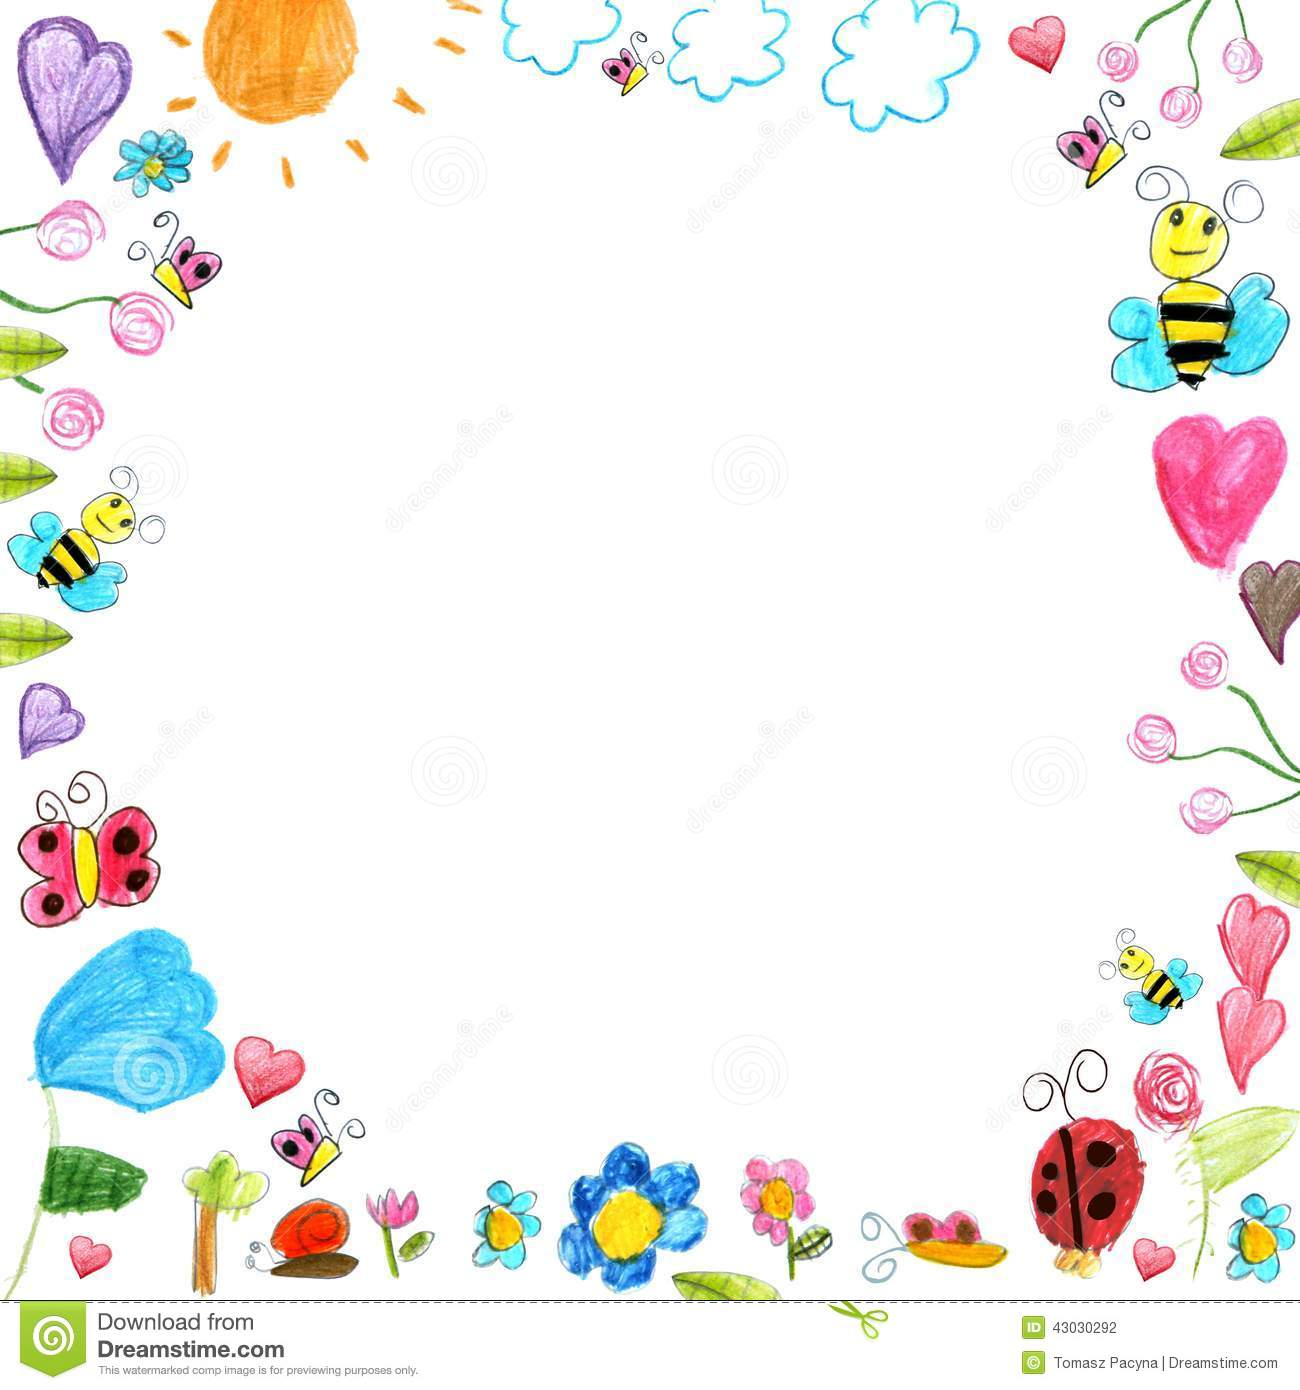 Imagenes Educativas Decoraciones Mariposas